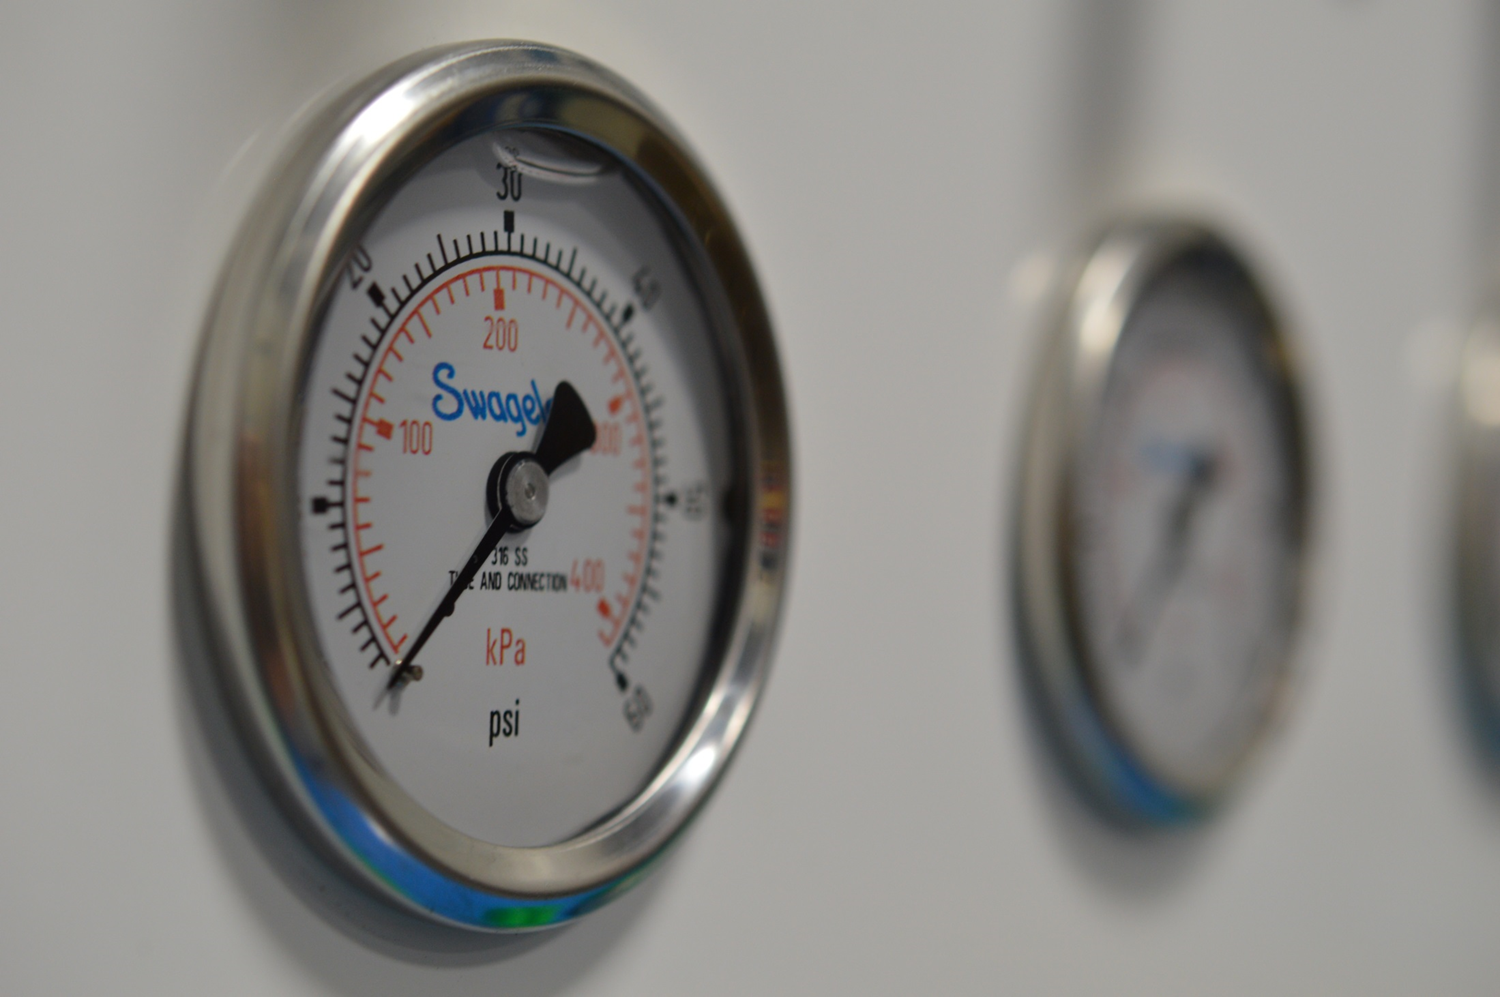 Does Your Swagelok Pressure Gauge Need a Fill-Up? Not Always